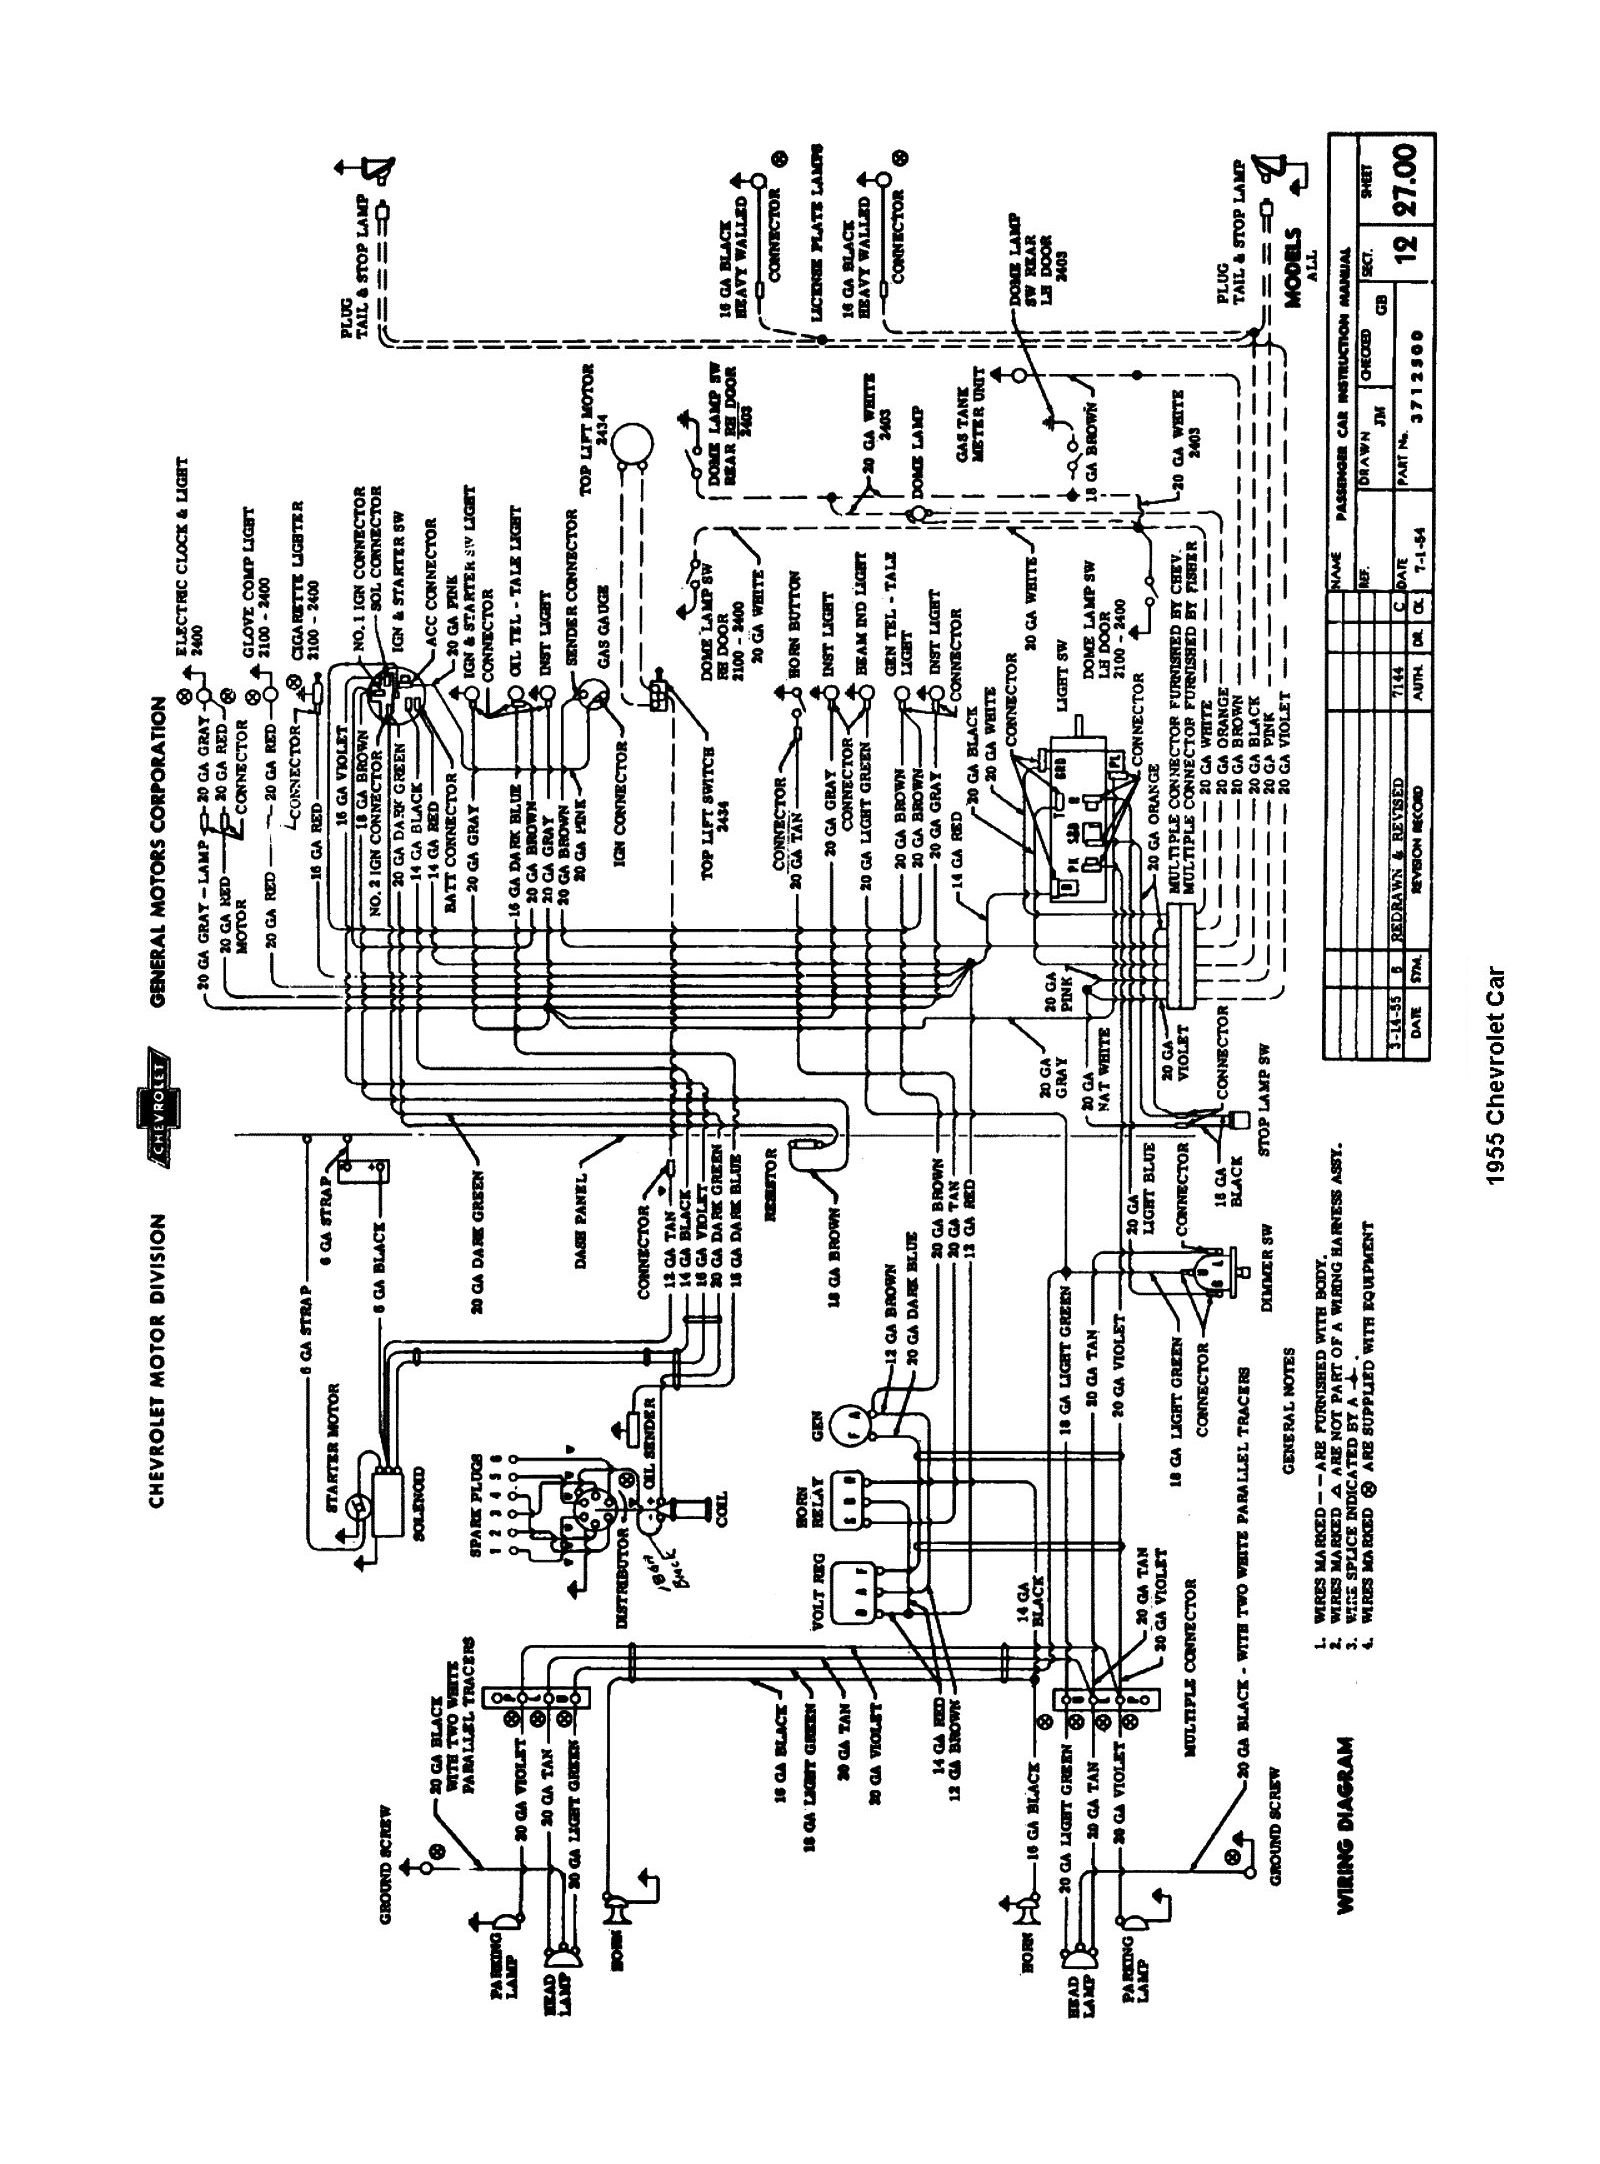 Chevy 1956 Neutral Wiring Diagram on 1957 chevy windshield wiper